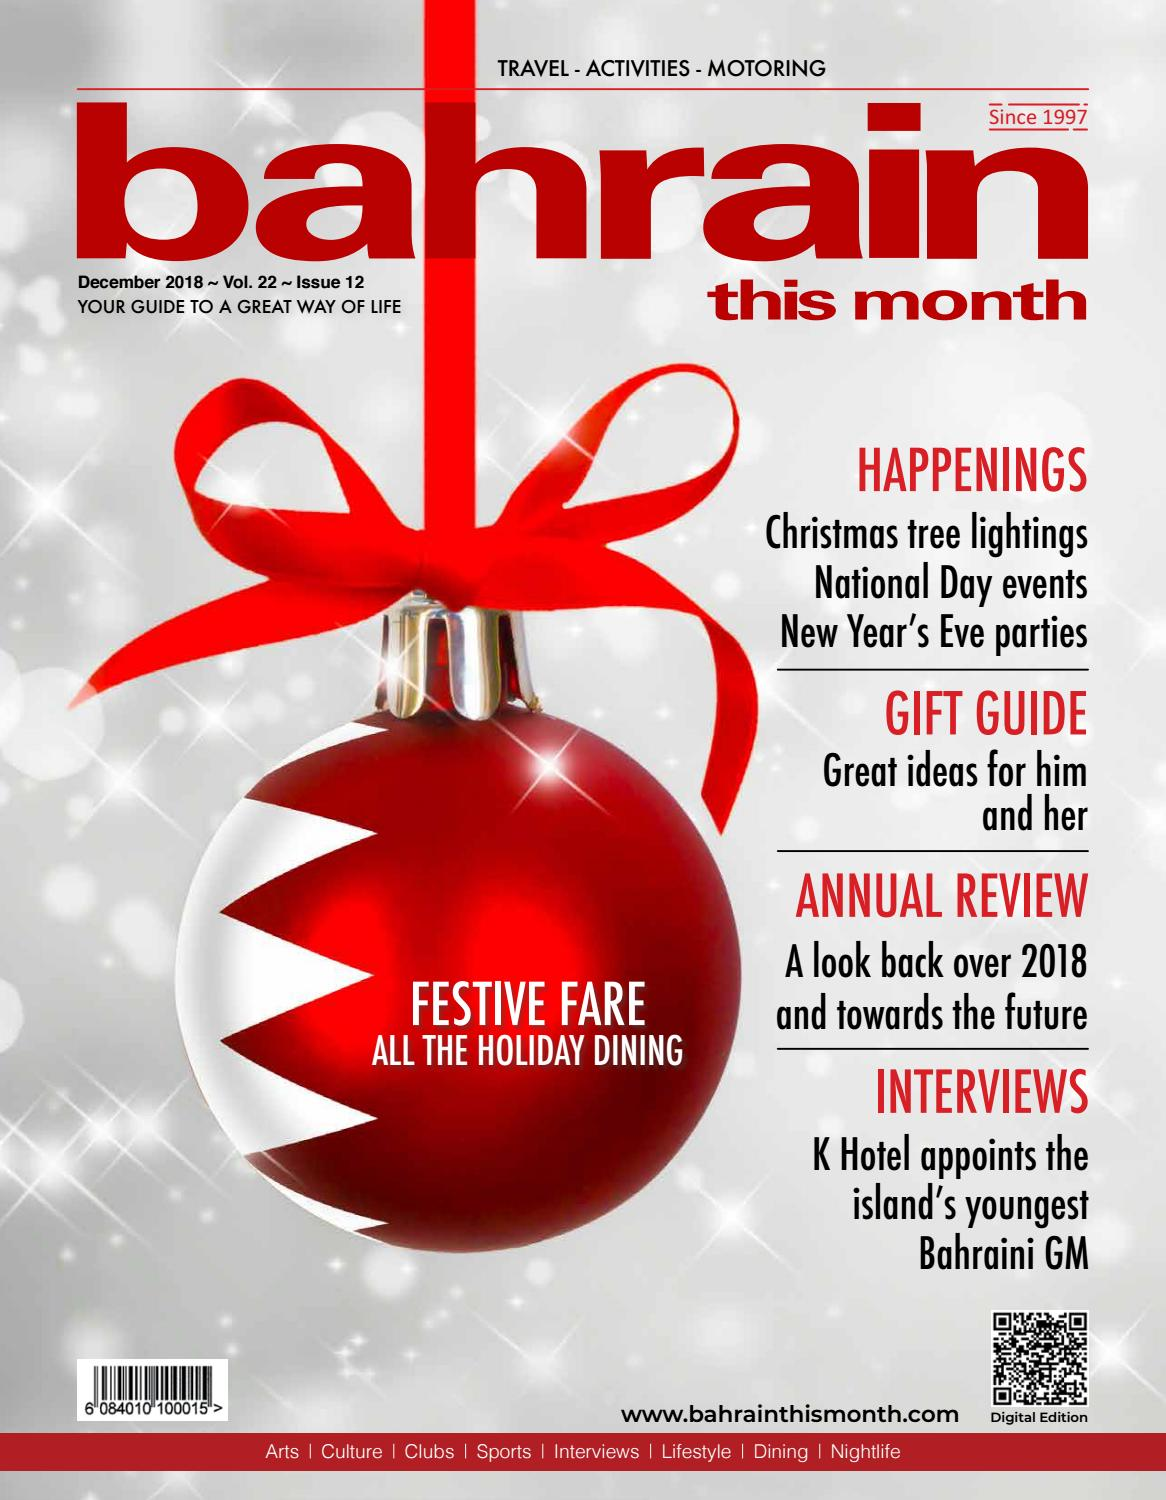 308eace7be9 Bahrain This Month - December 2018 by Red House Marketing - issuu